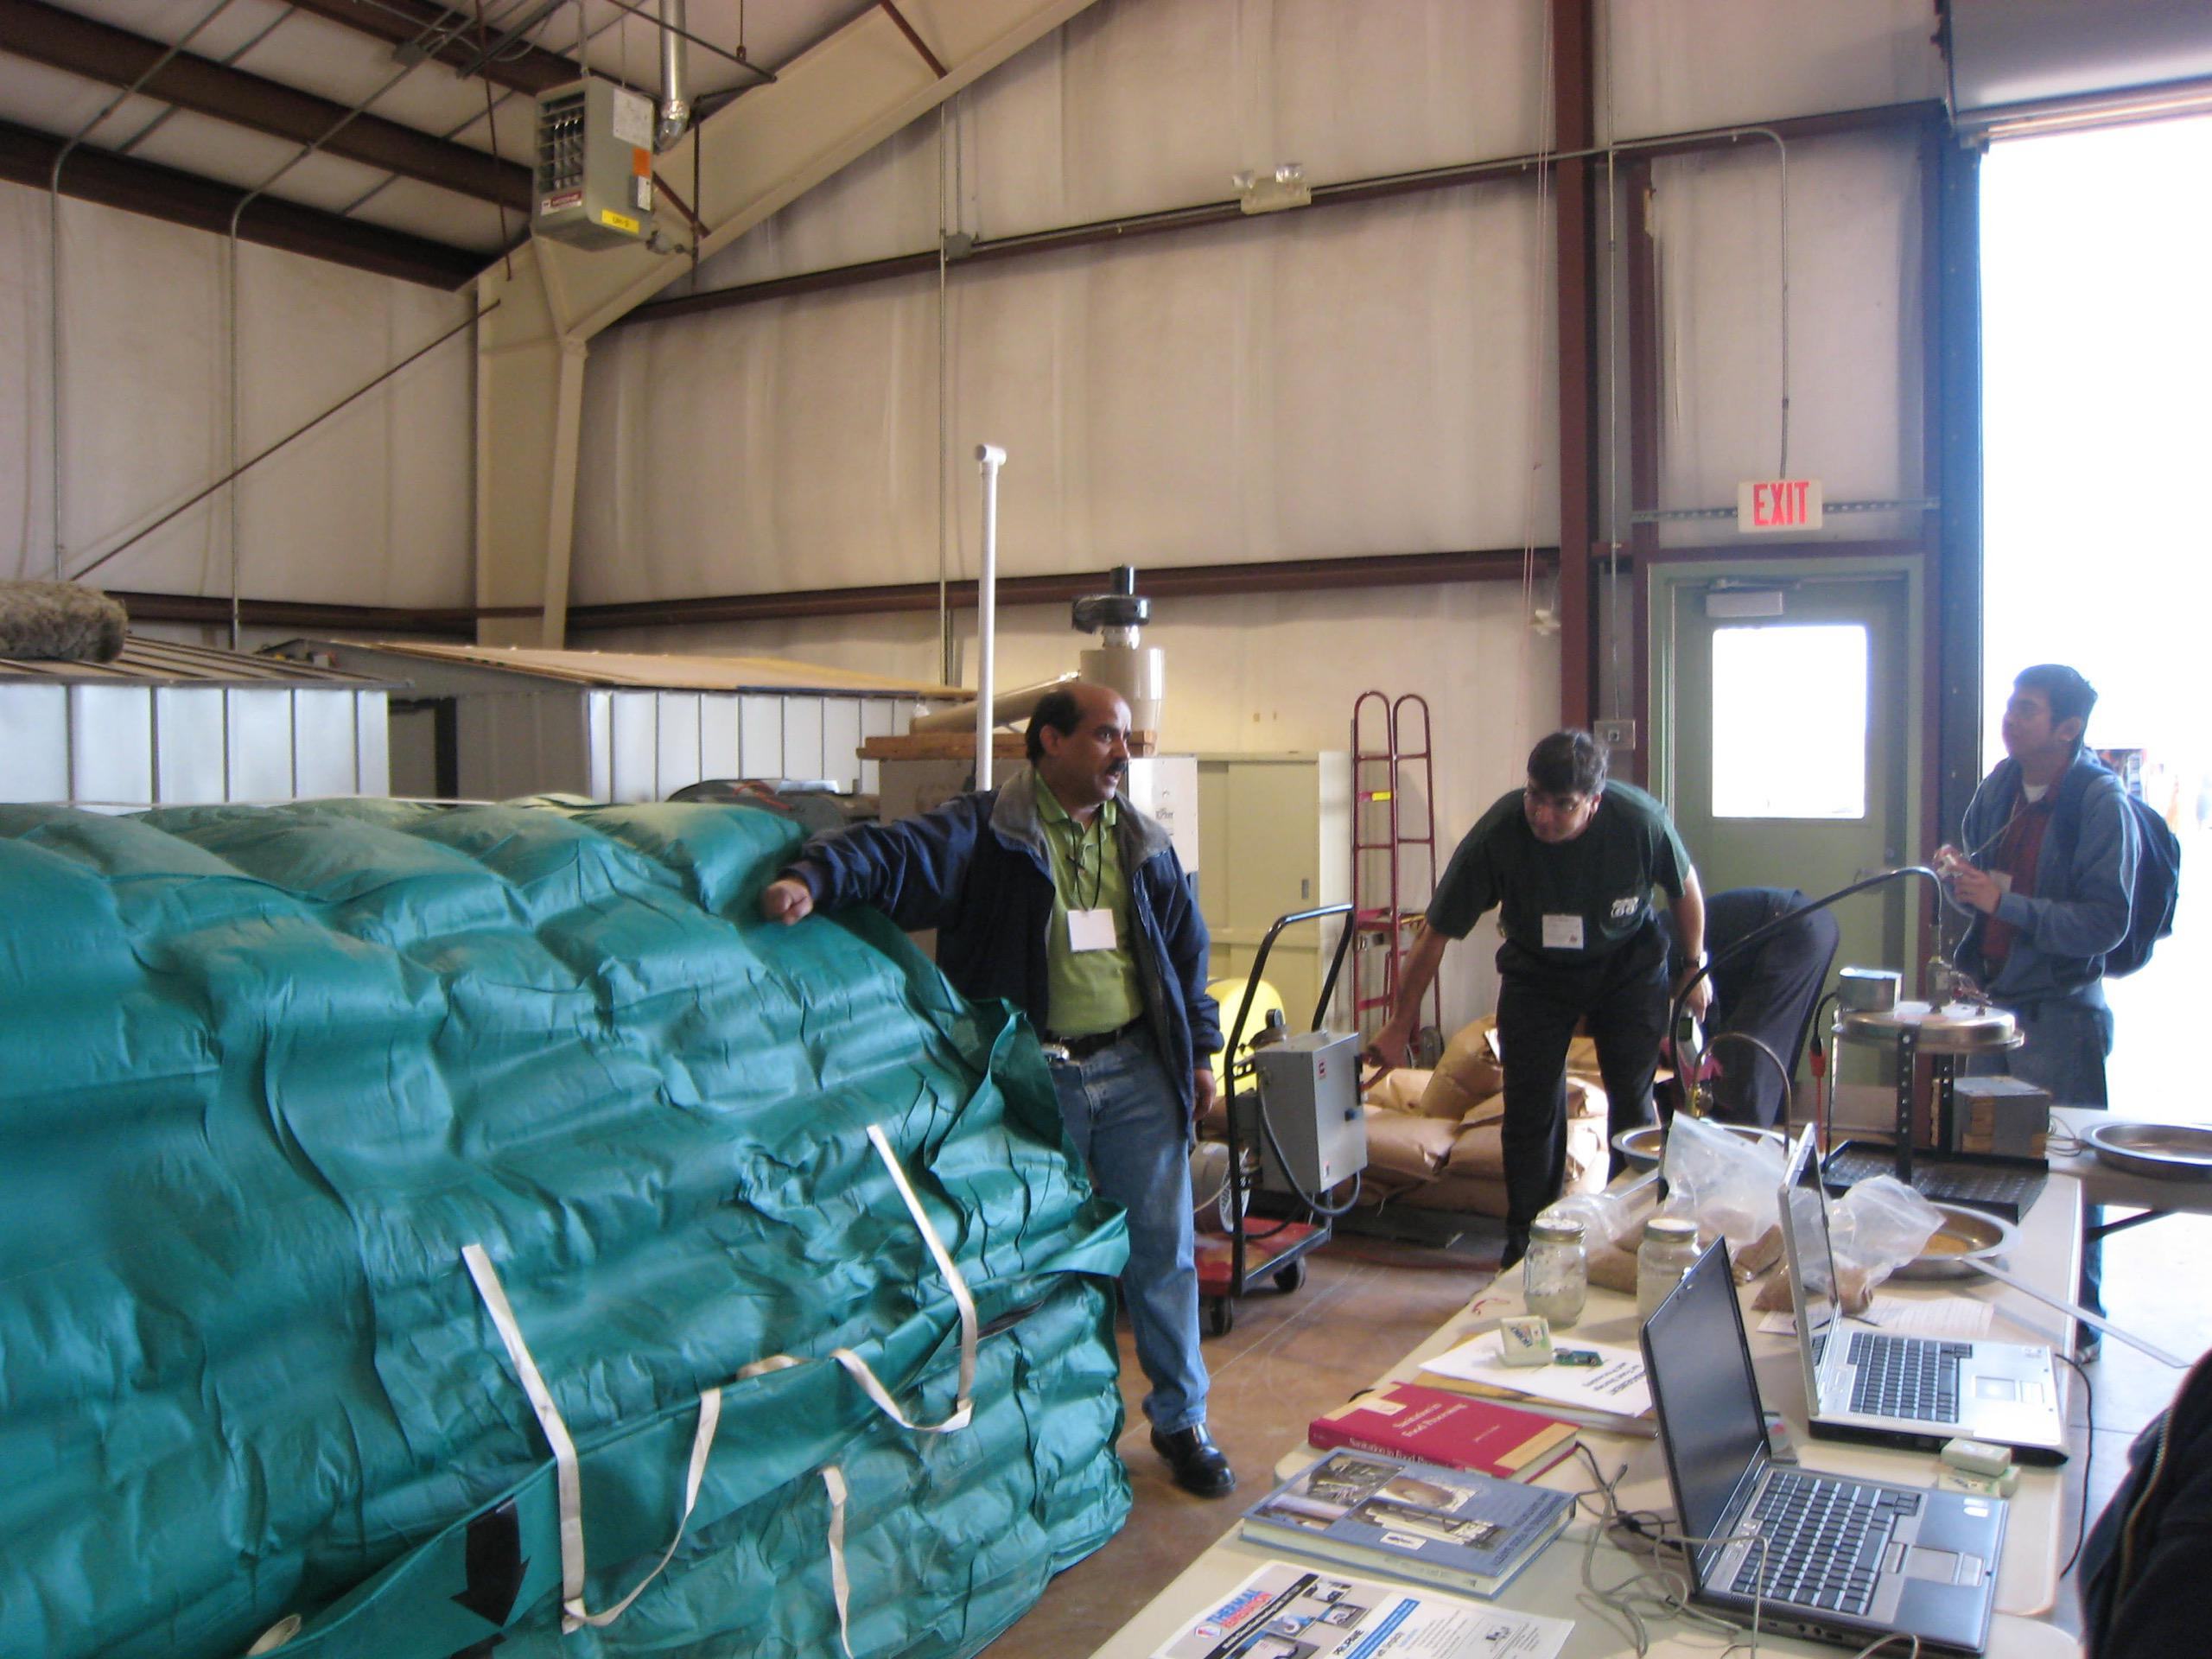 Thermal Remediation scientists conduct research together